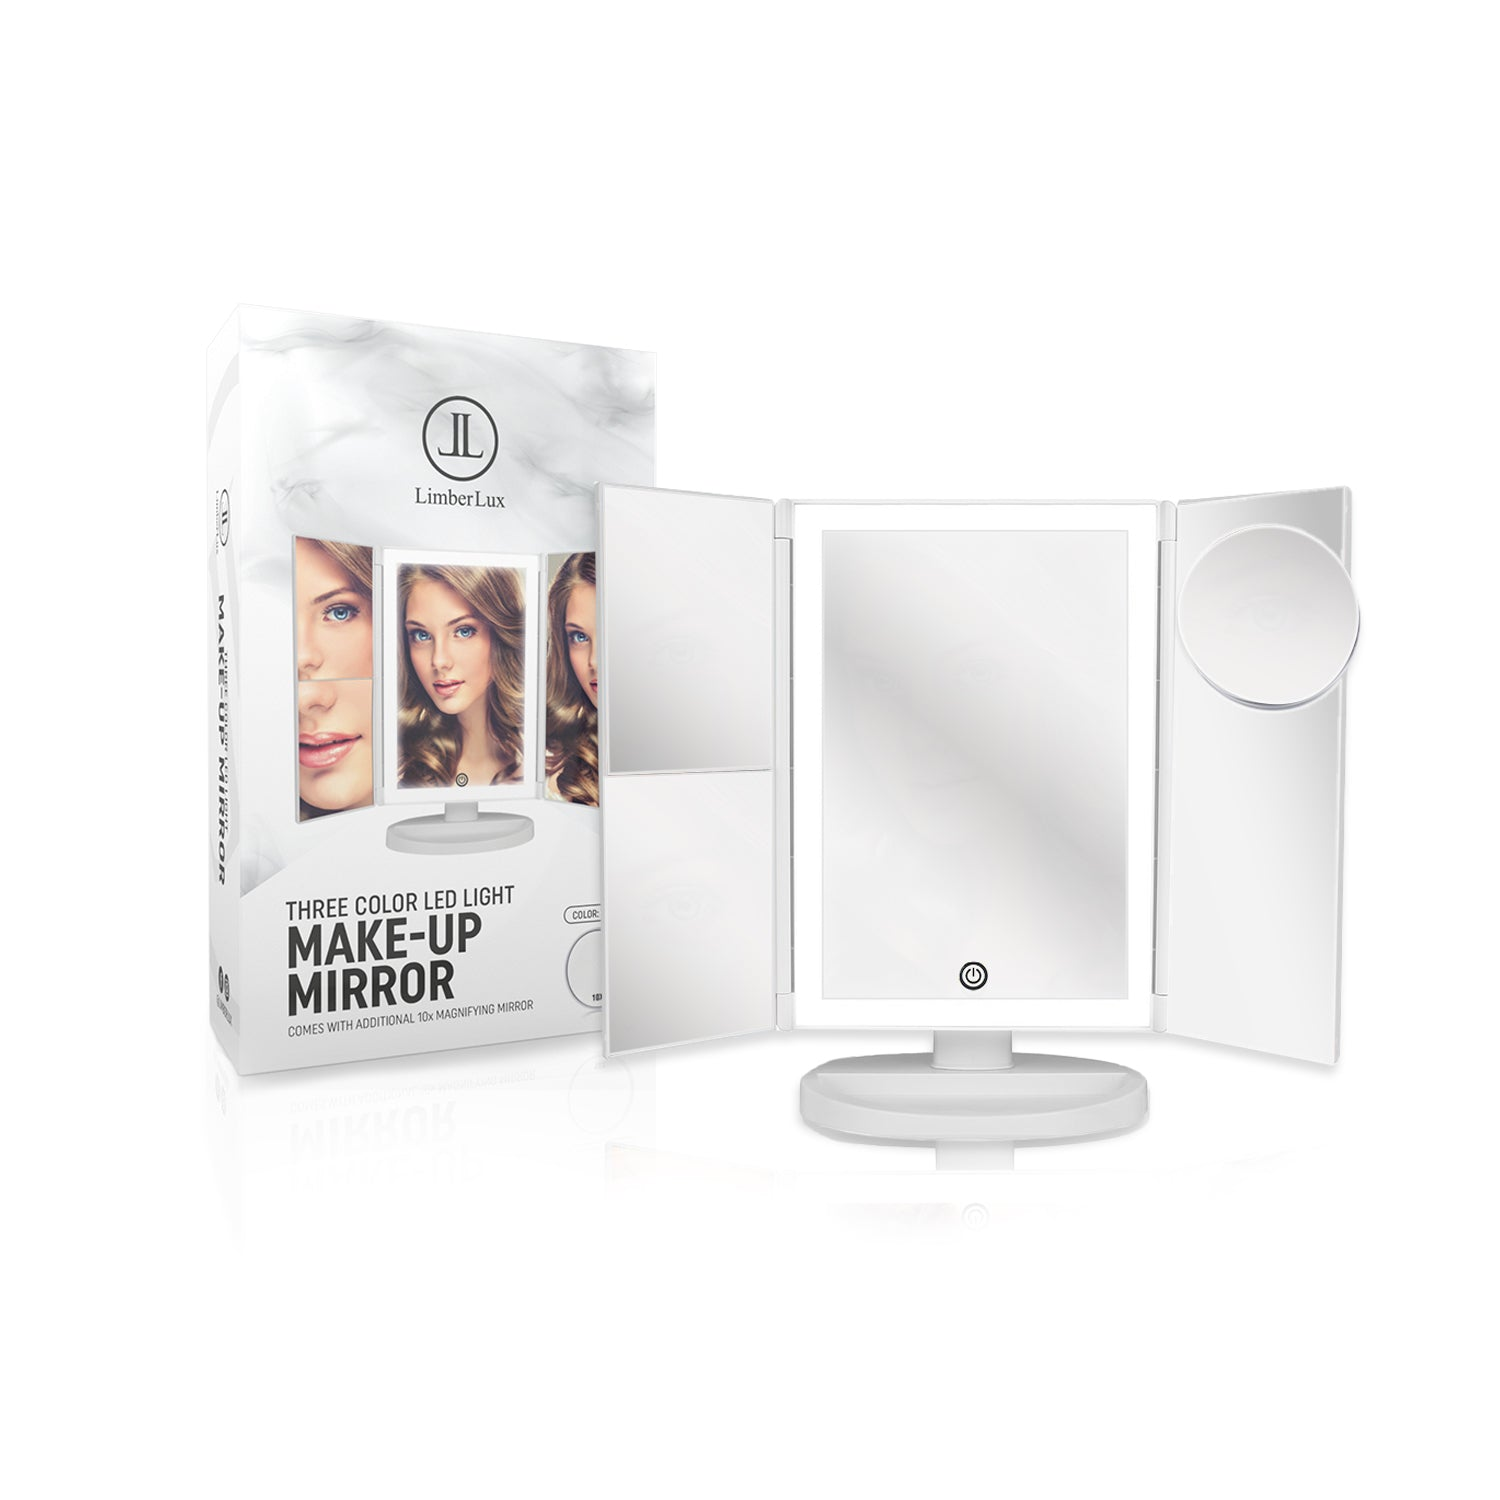 Makeup mirror with lighting